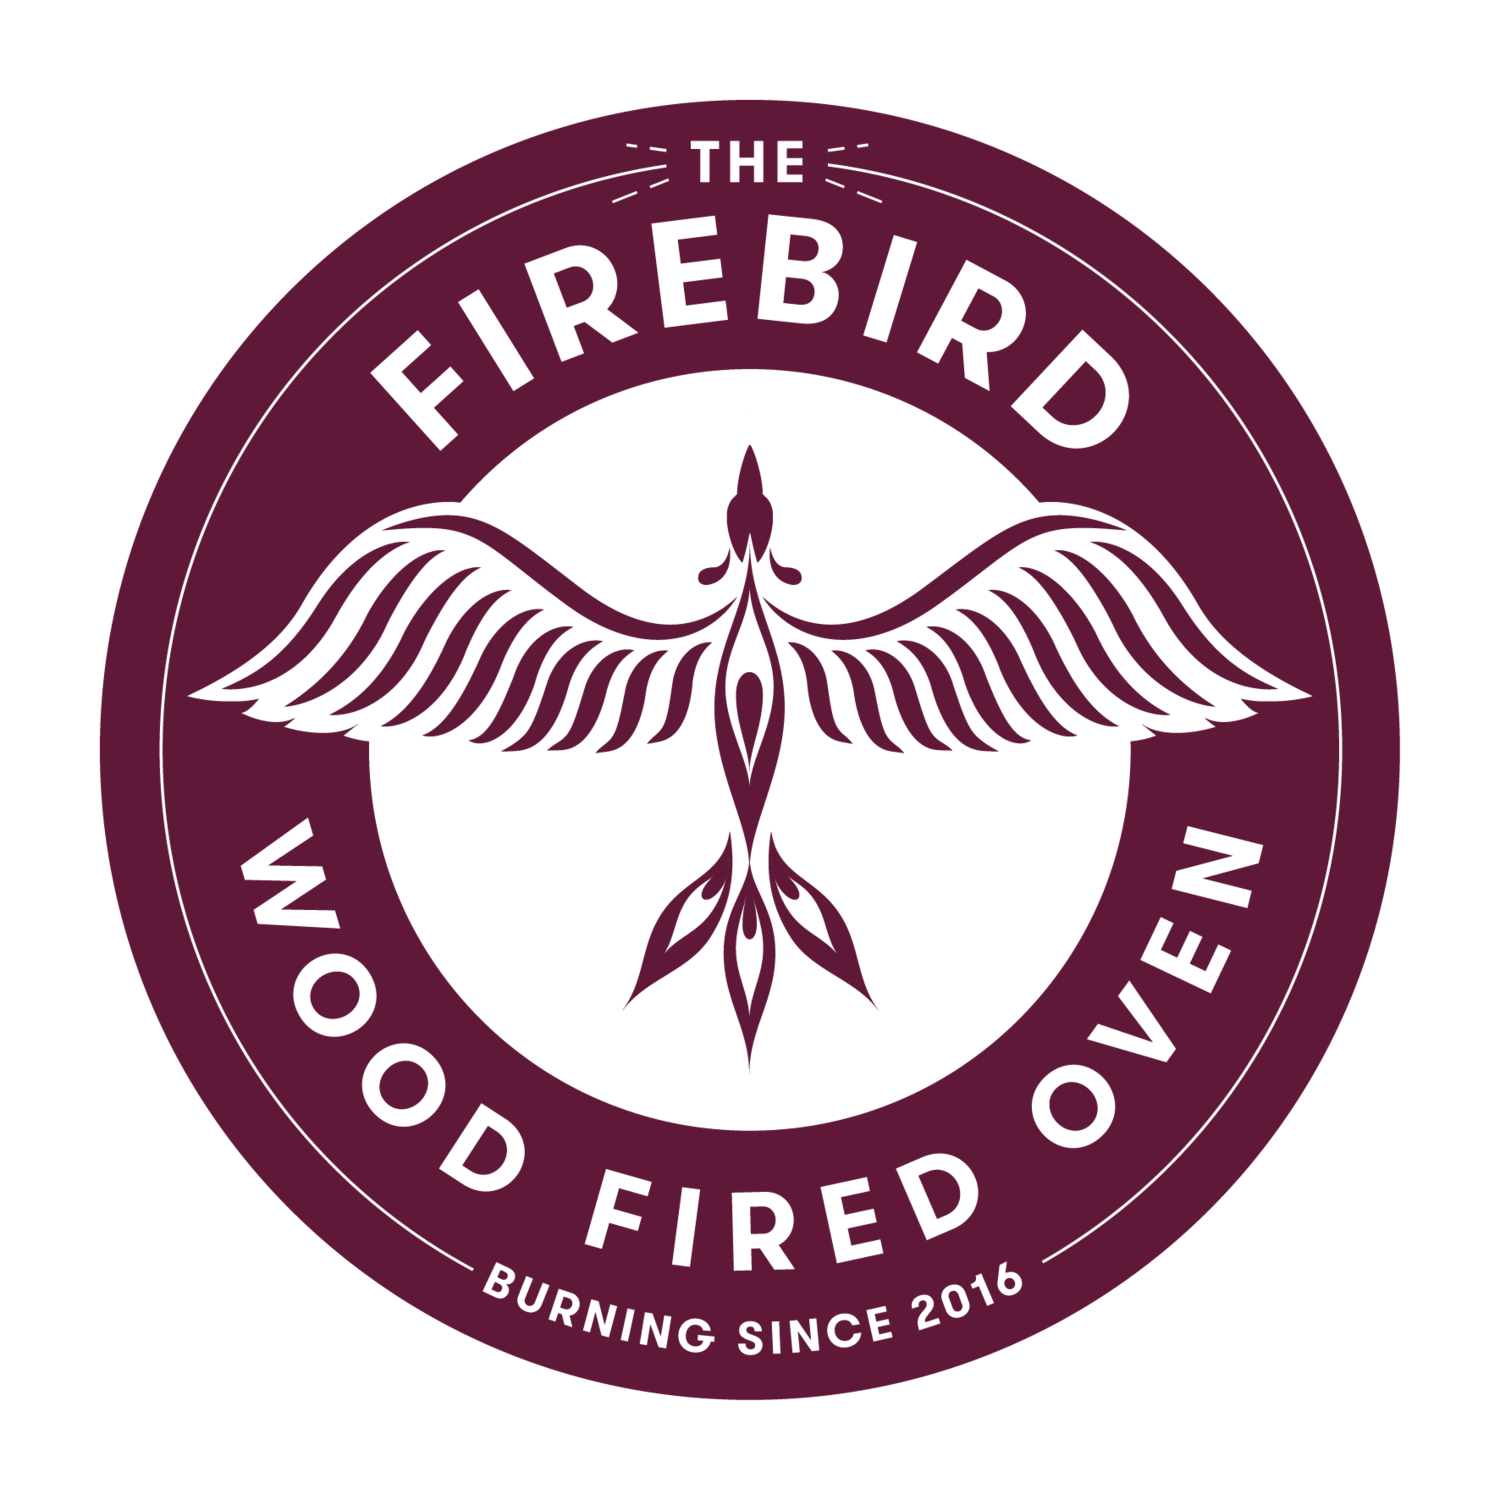 The Firebird Oven